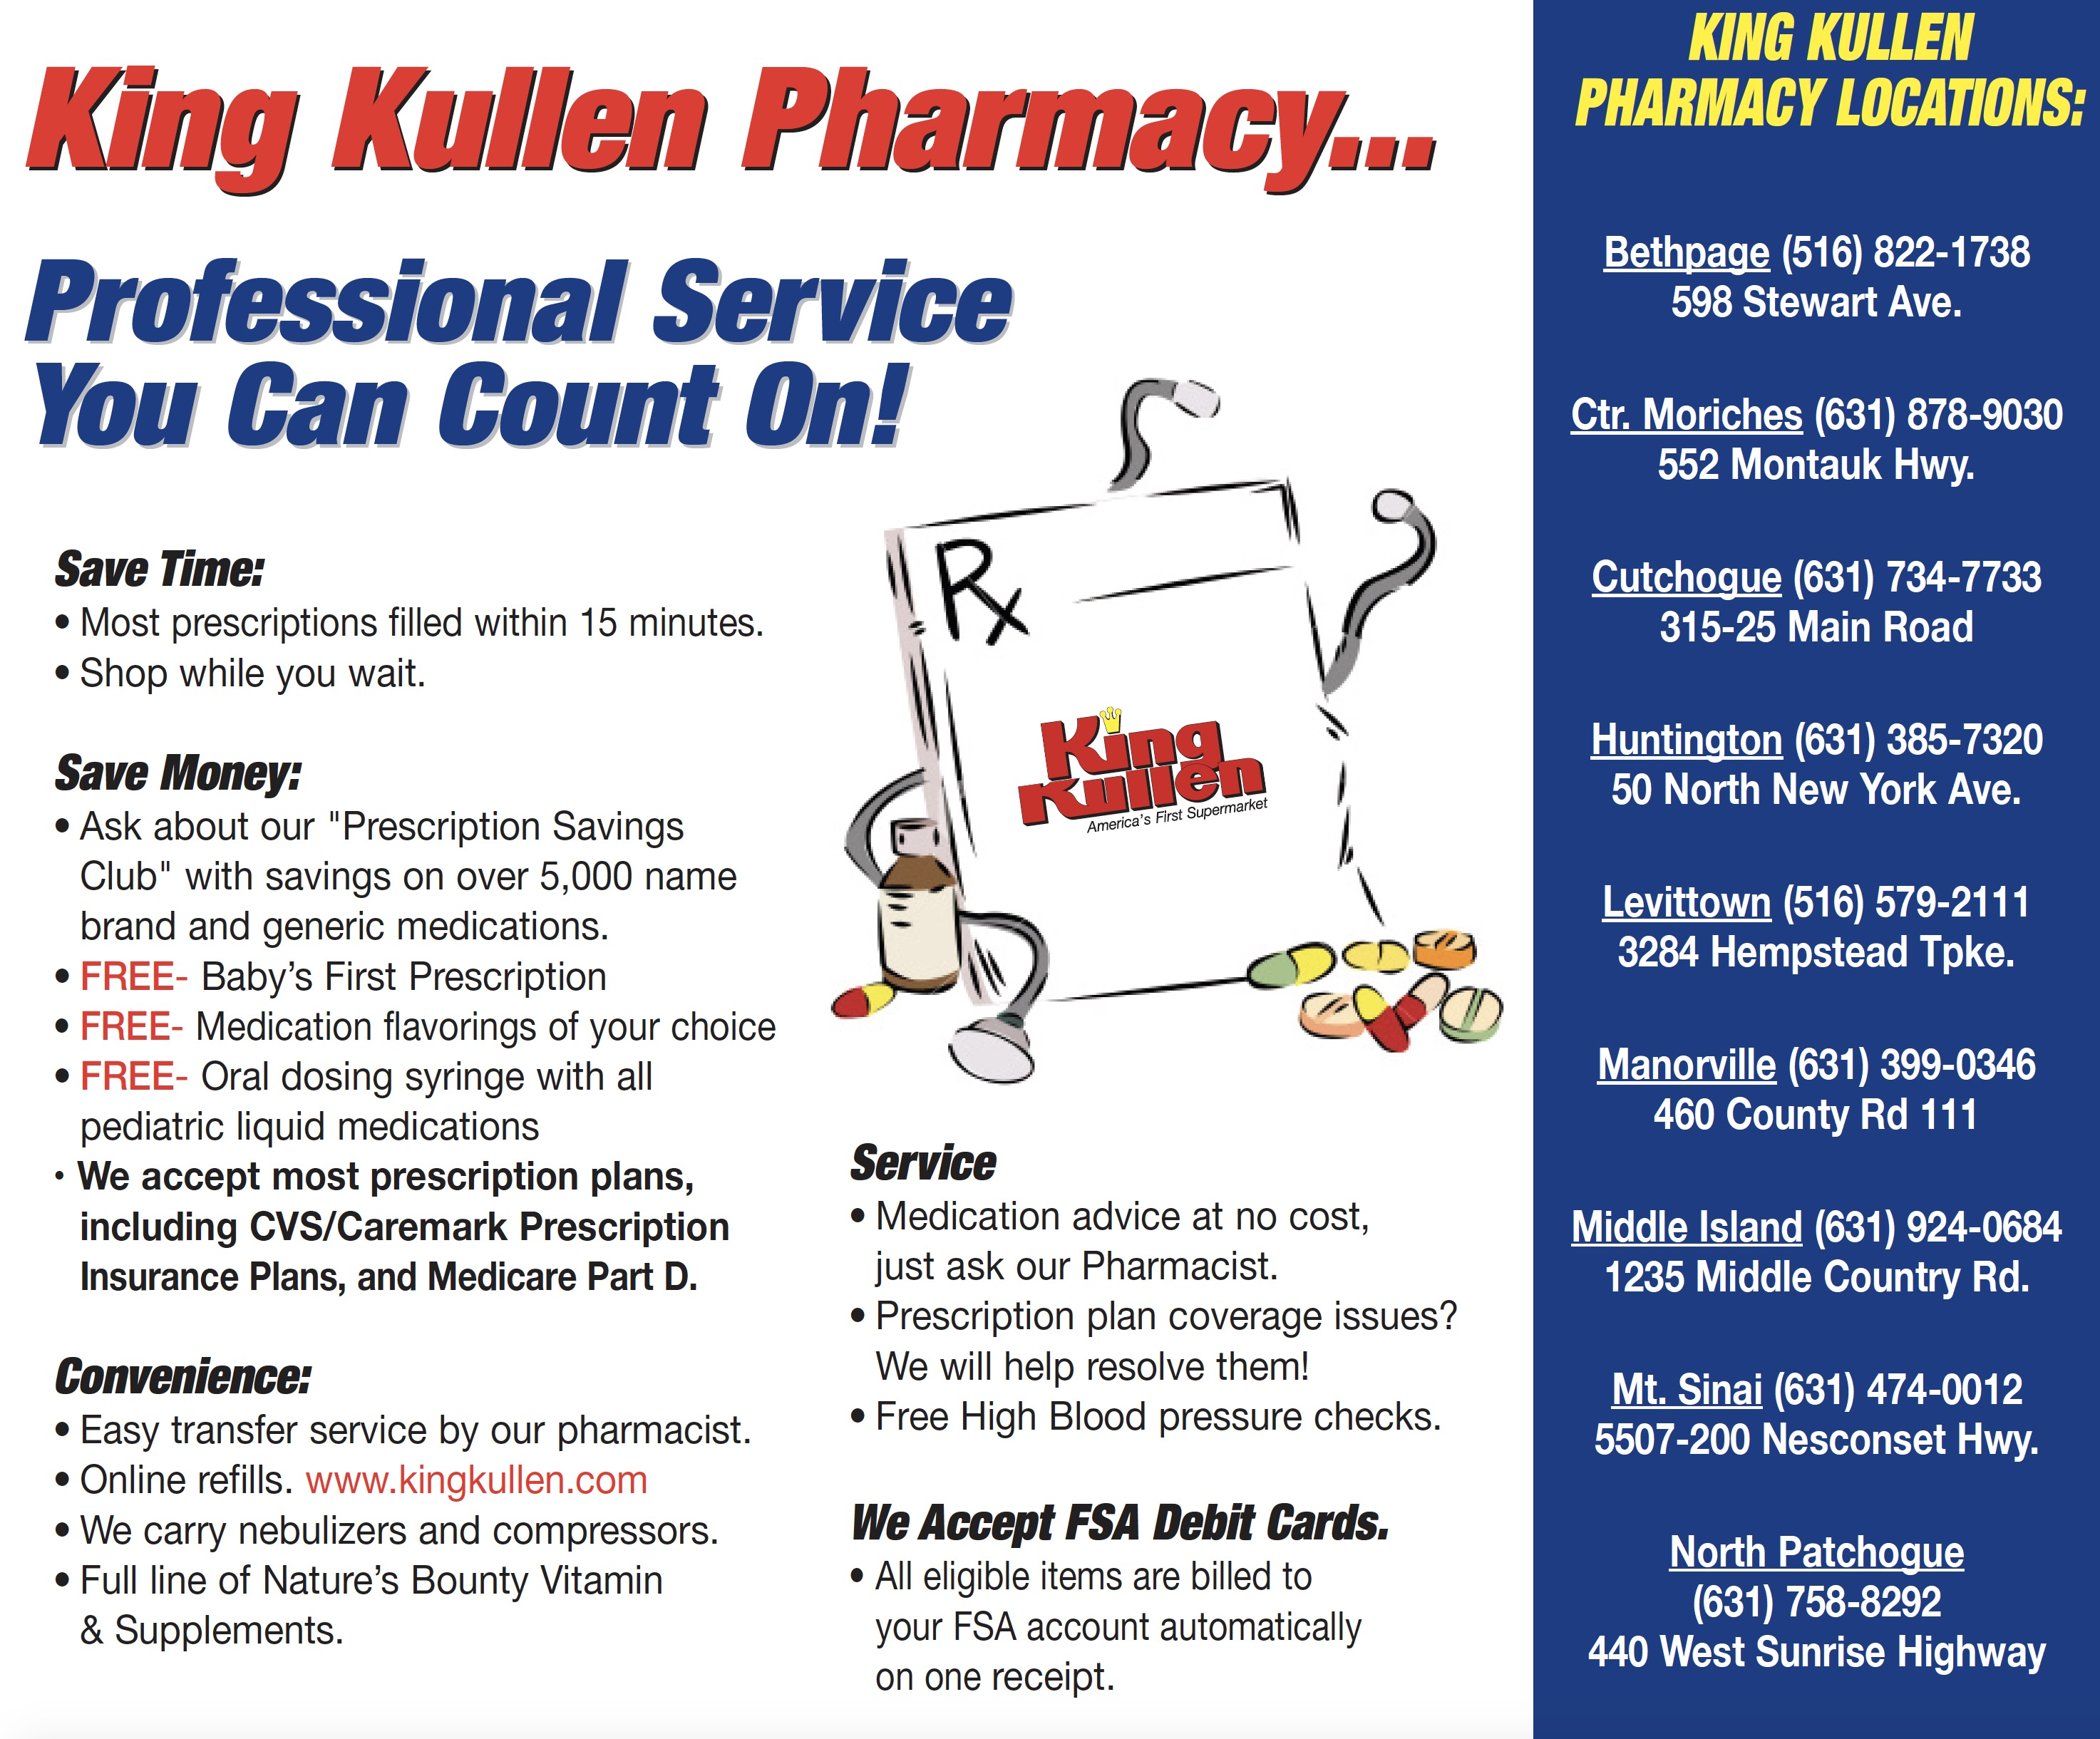 King Kullen Pharmacies Pharmacy Department Long Island NY